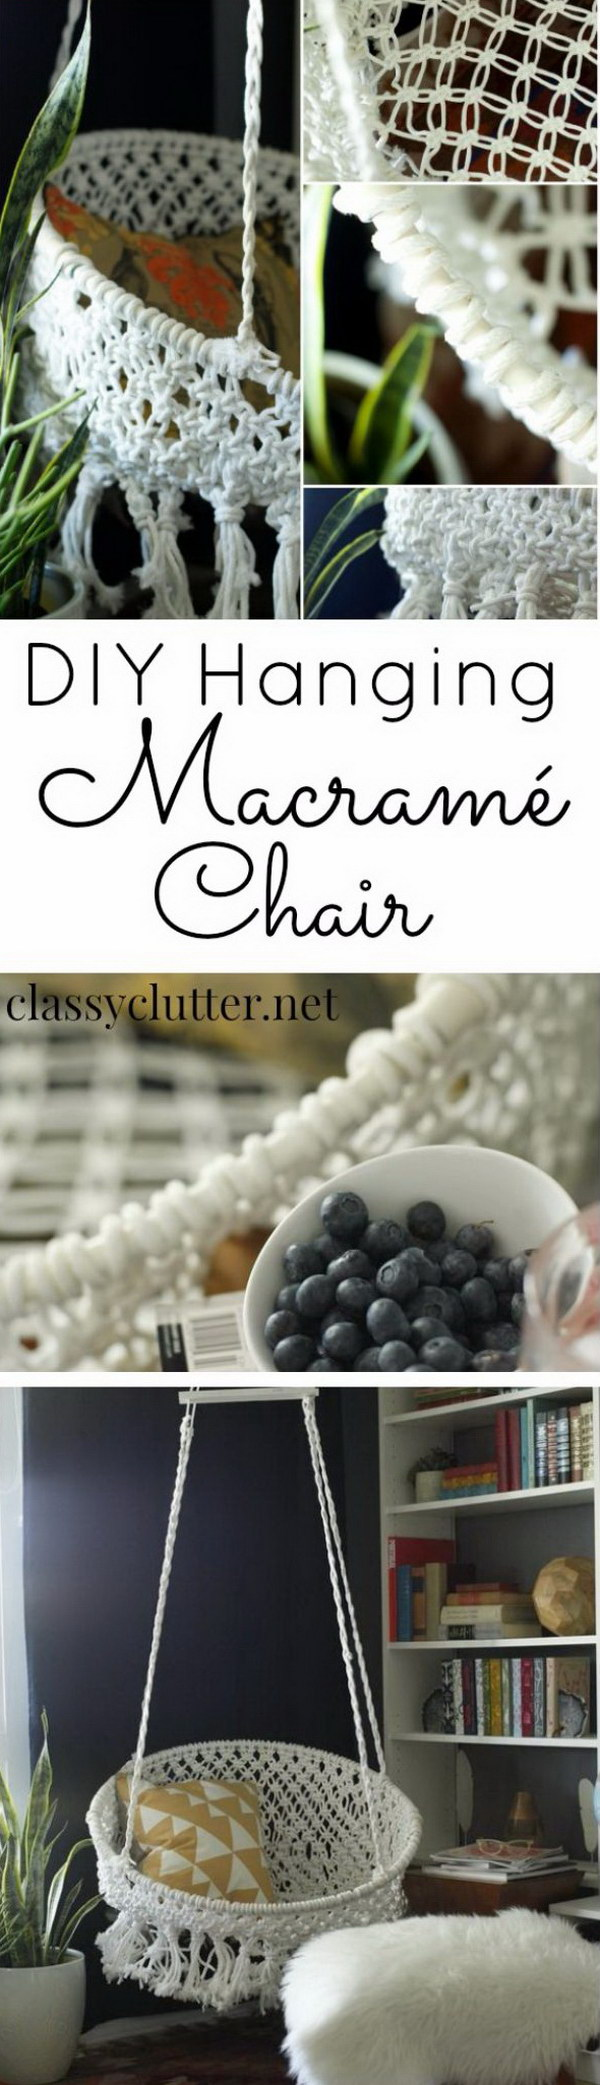 DIY Hanging Macrame Chair